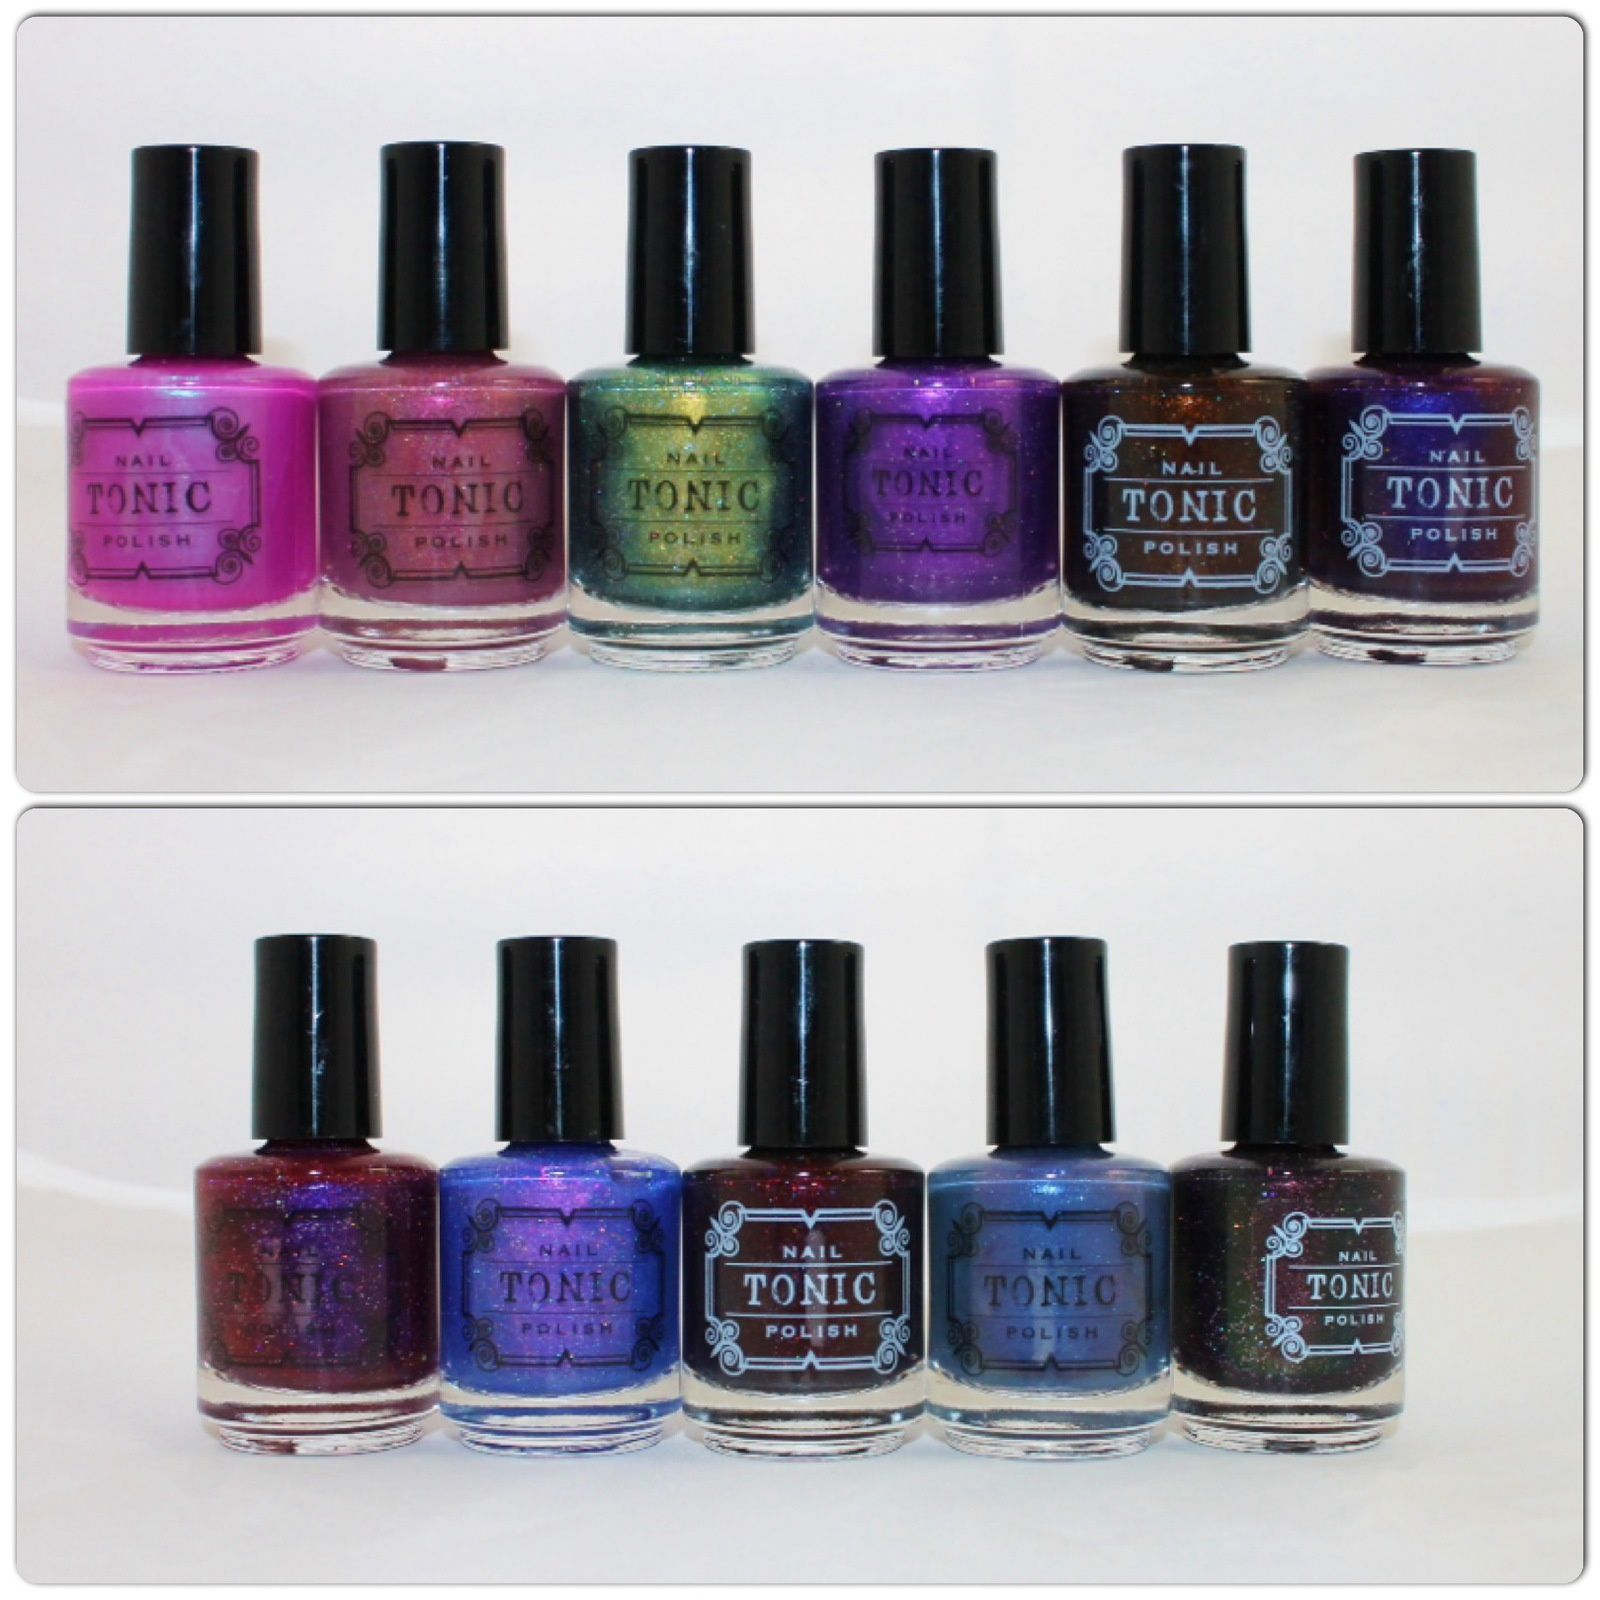 Tonic Polish Light of Alexandria, Poison Rose, Slitherin', Toxic, Ninja Pumpkin, Spellbound, Polish Con or Bust! 2016, Windy City, Bloody Hell, Silent Storm, Watcher's Woods.